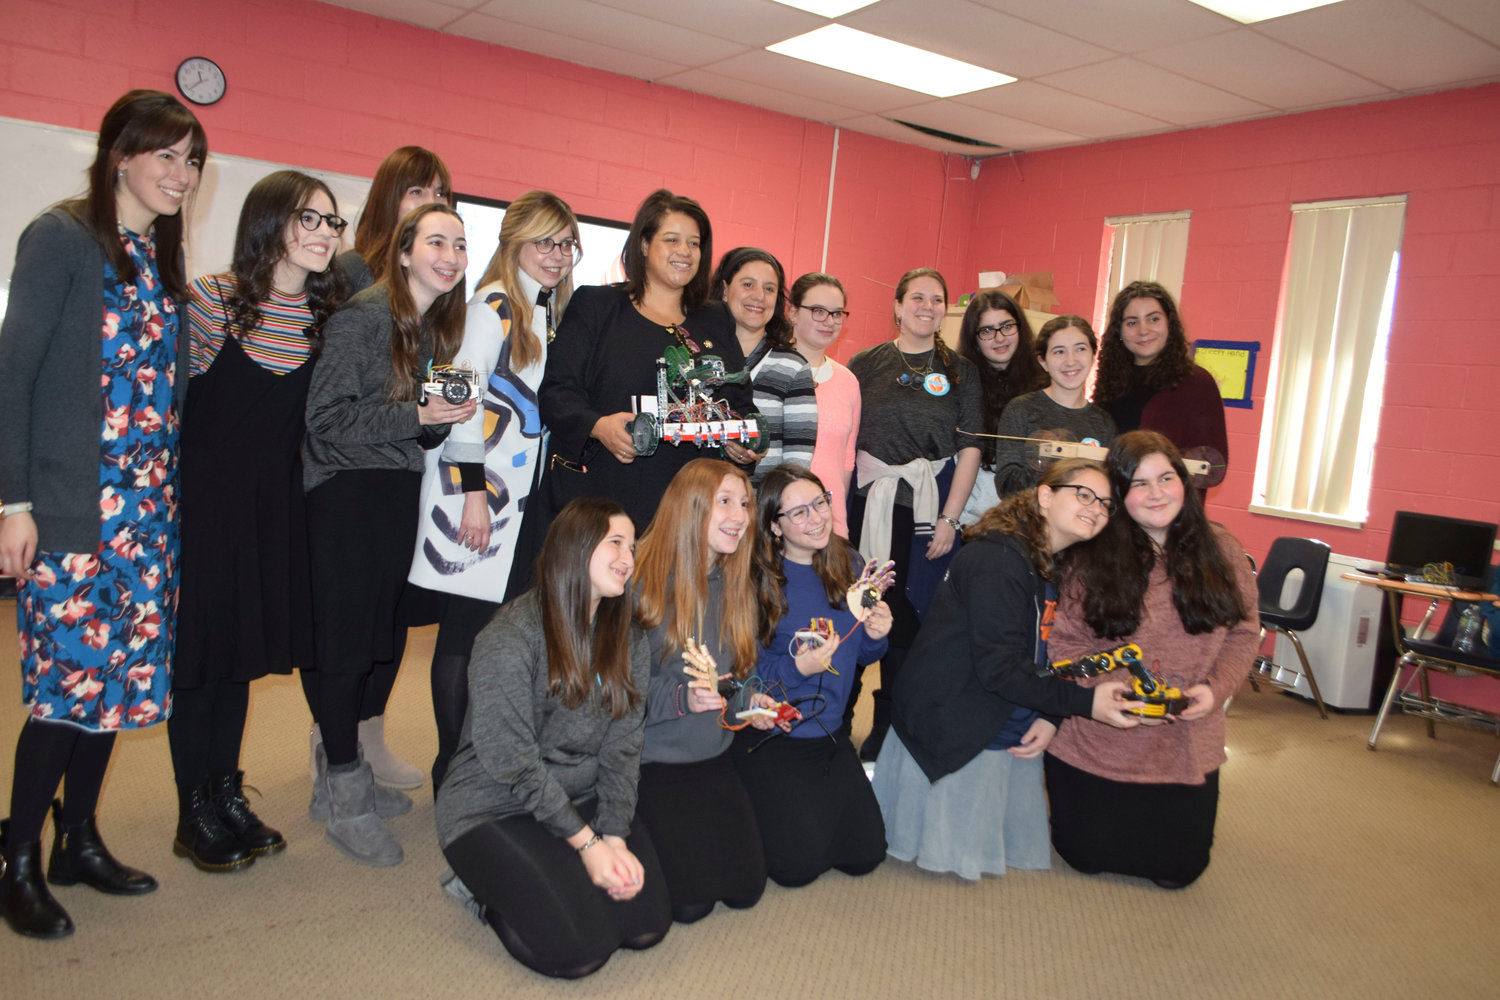 Midreshevet Shalhevet High School students with some of their STEM projects. At far left is science teacher Aliza Feder. Principal Esther Eisenman is fifth from left, and State Assemblywoman Michaelle Solages is to her left.